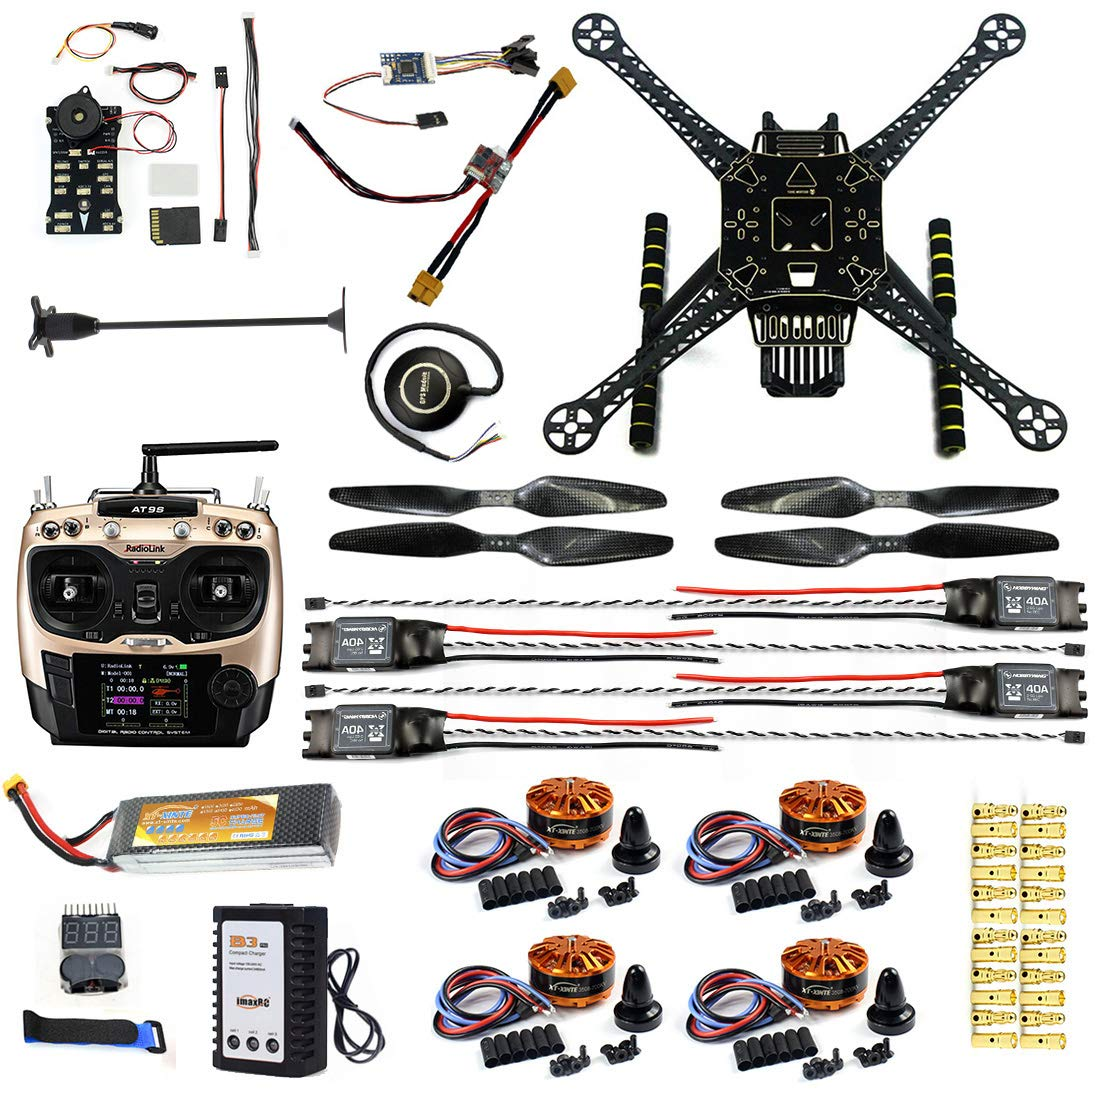 CS PRIORITY DIY Drone S600 4-Axis Rack Quadcopter Frame Kit